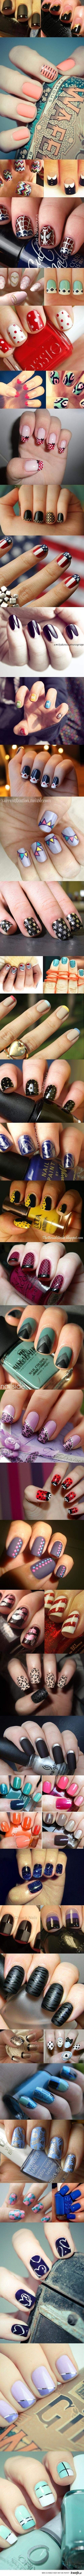 So.Many.Ideas!  There are several cool nail design ideas on this post.  nail, polish, design, manicure